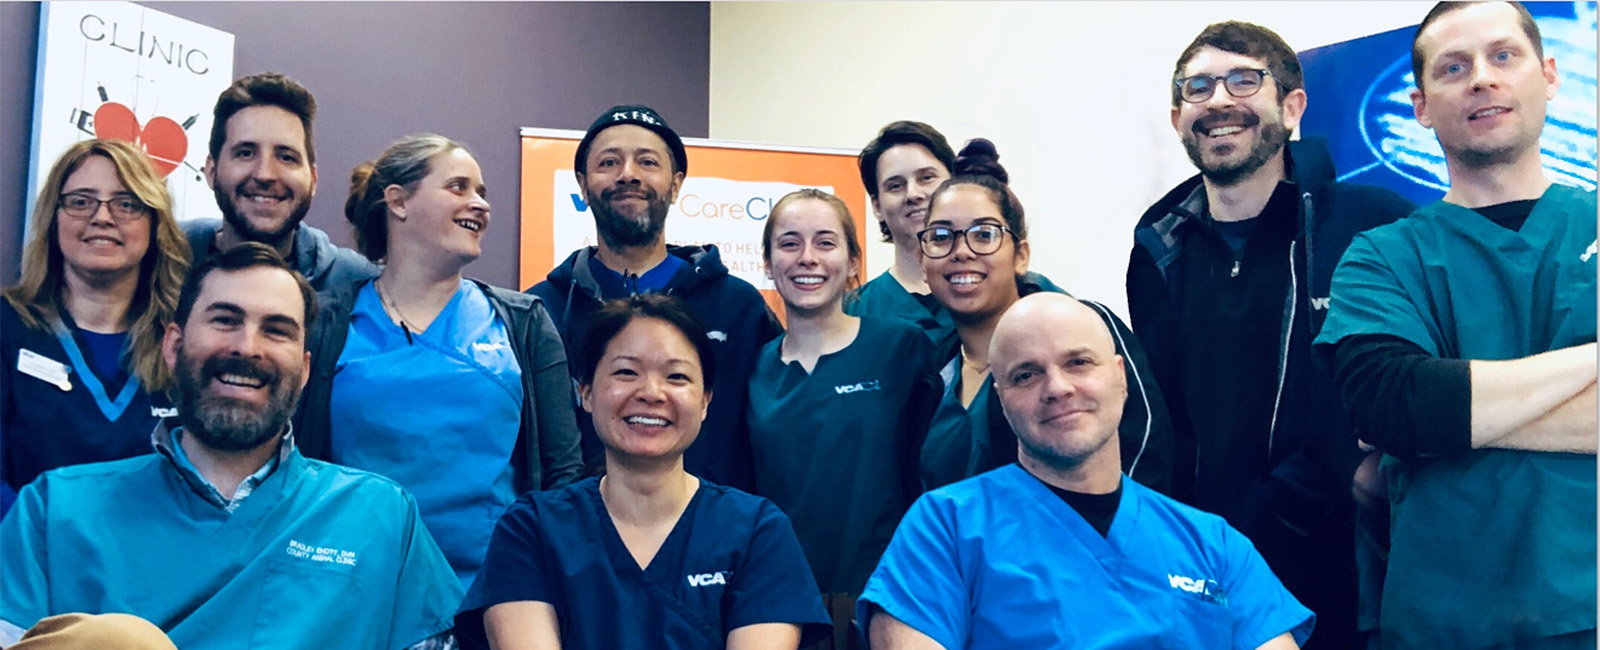 Homepage Team Picture of VCA County Animal Clinic